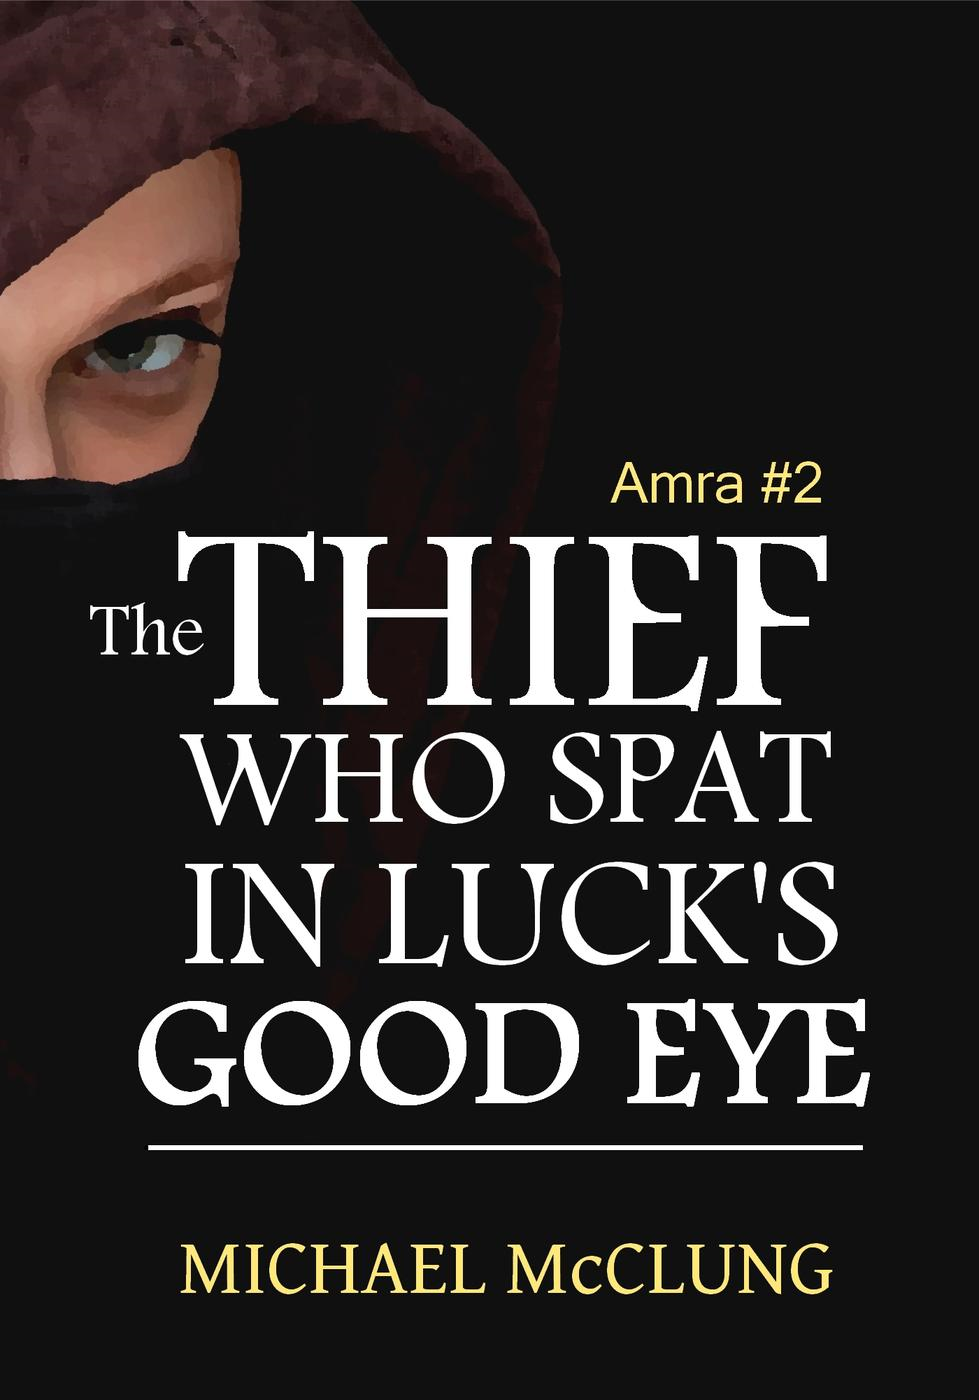 The Thief Who Spat In Luck's Good Eye (The Amra Thetys Series, #2)